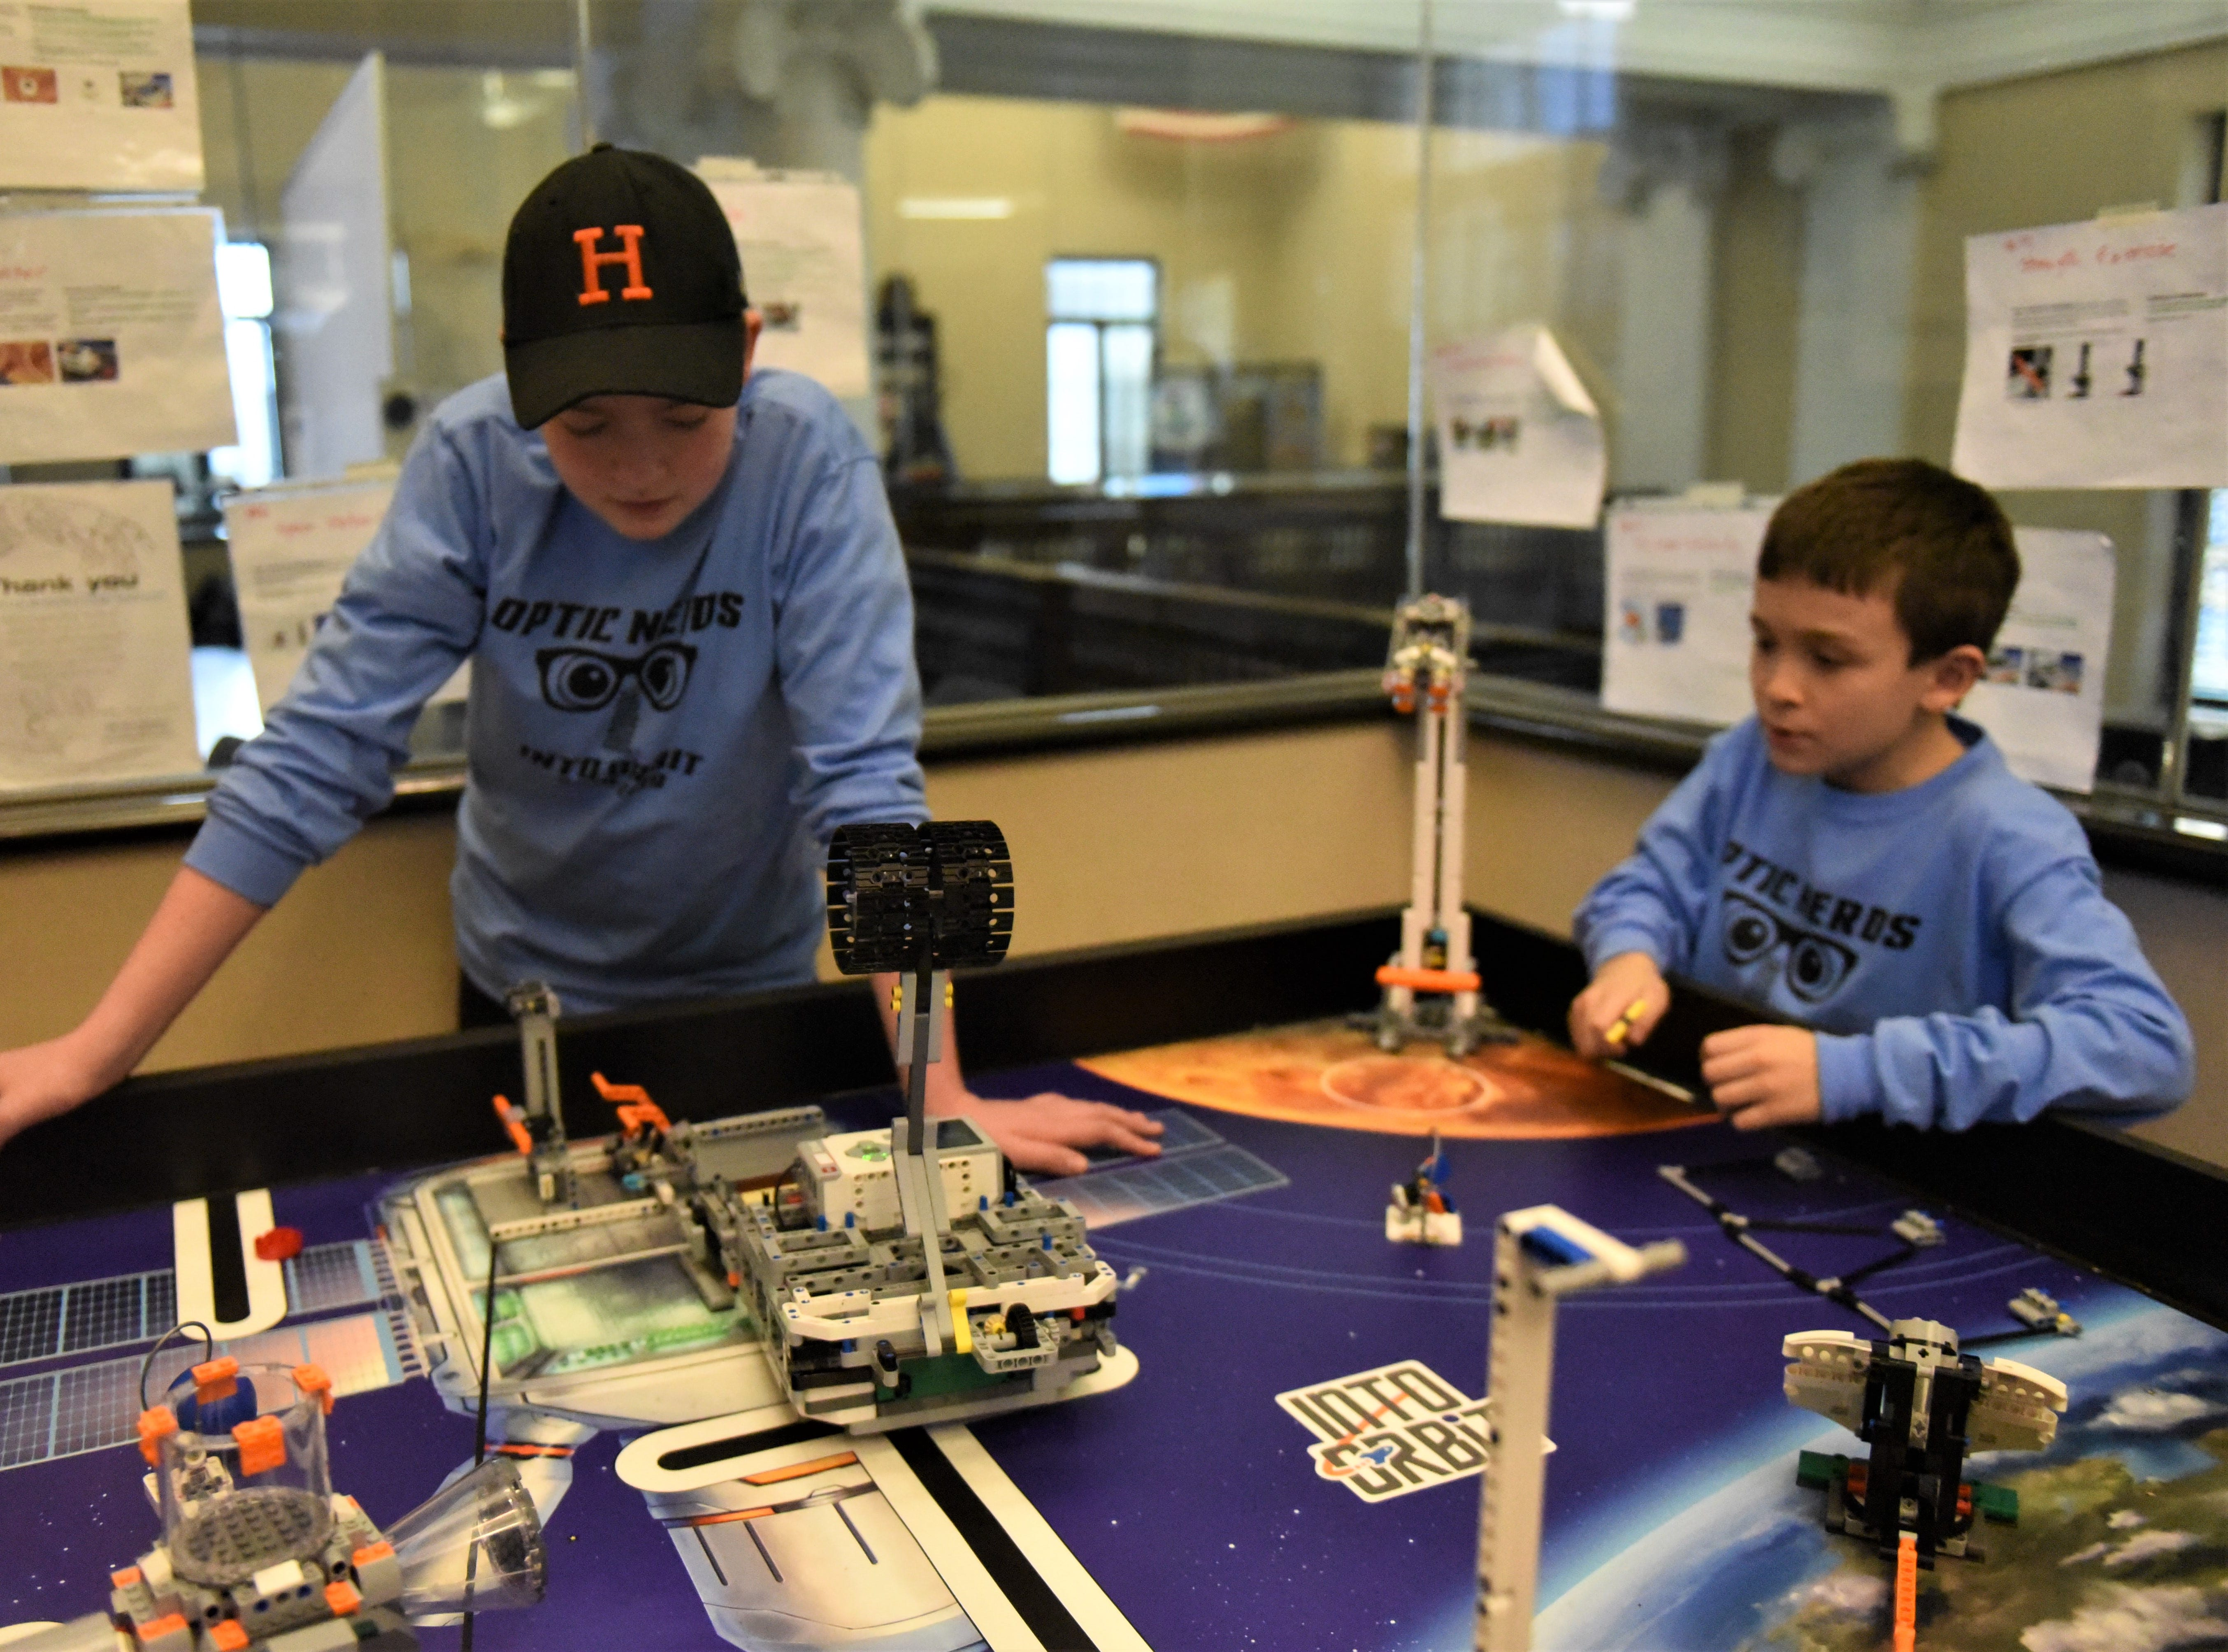 Josiah Brower, 13, left, and Harrison Roth, 9, test a robot before their competition on Jan. 26 at the Penn State Berks Campus.